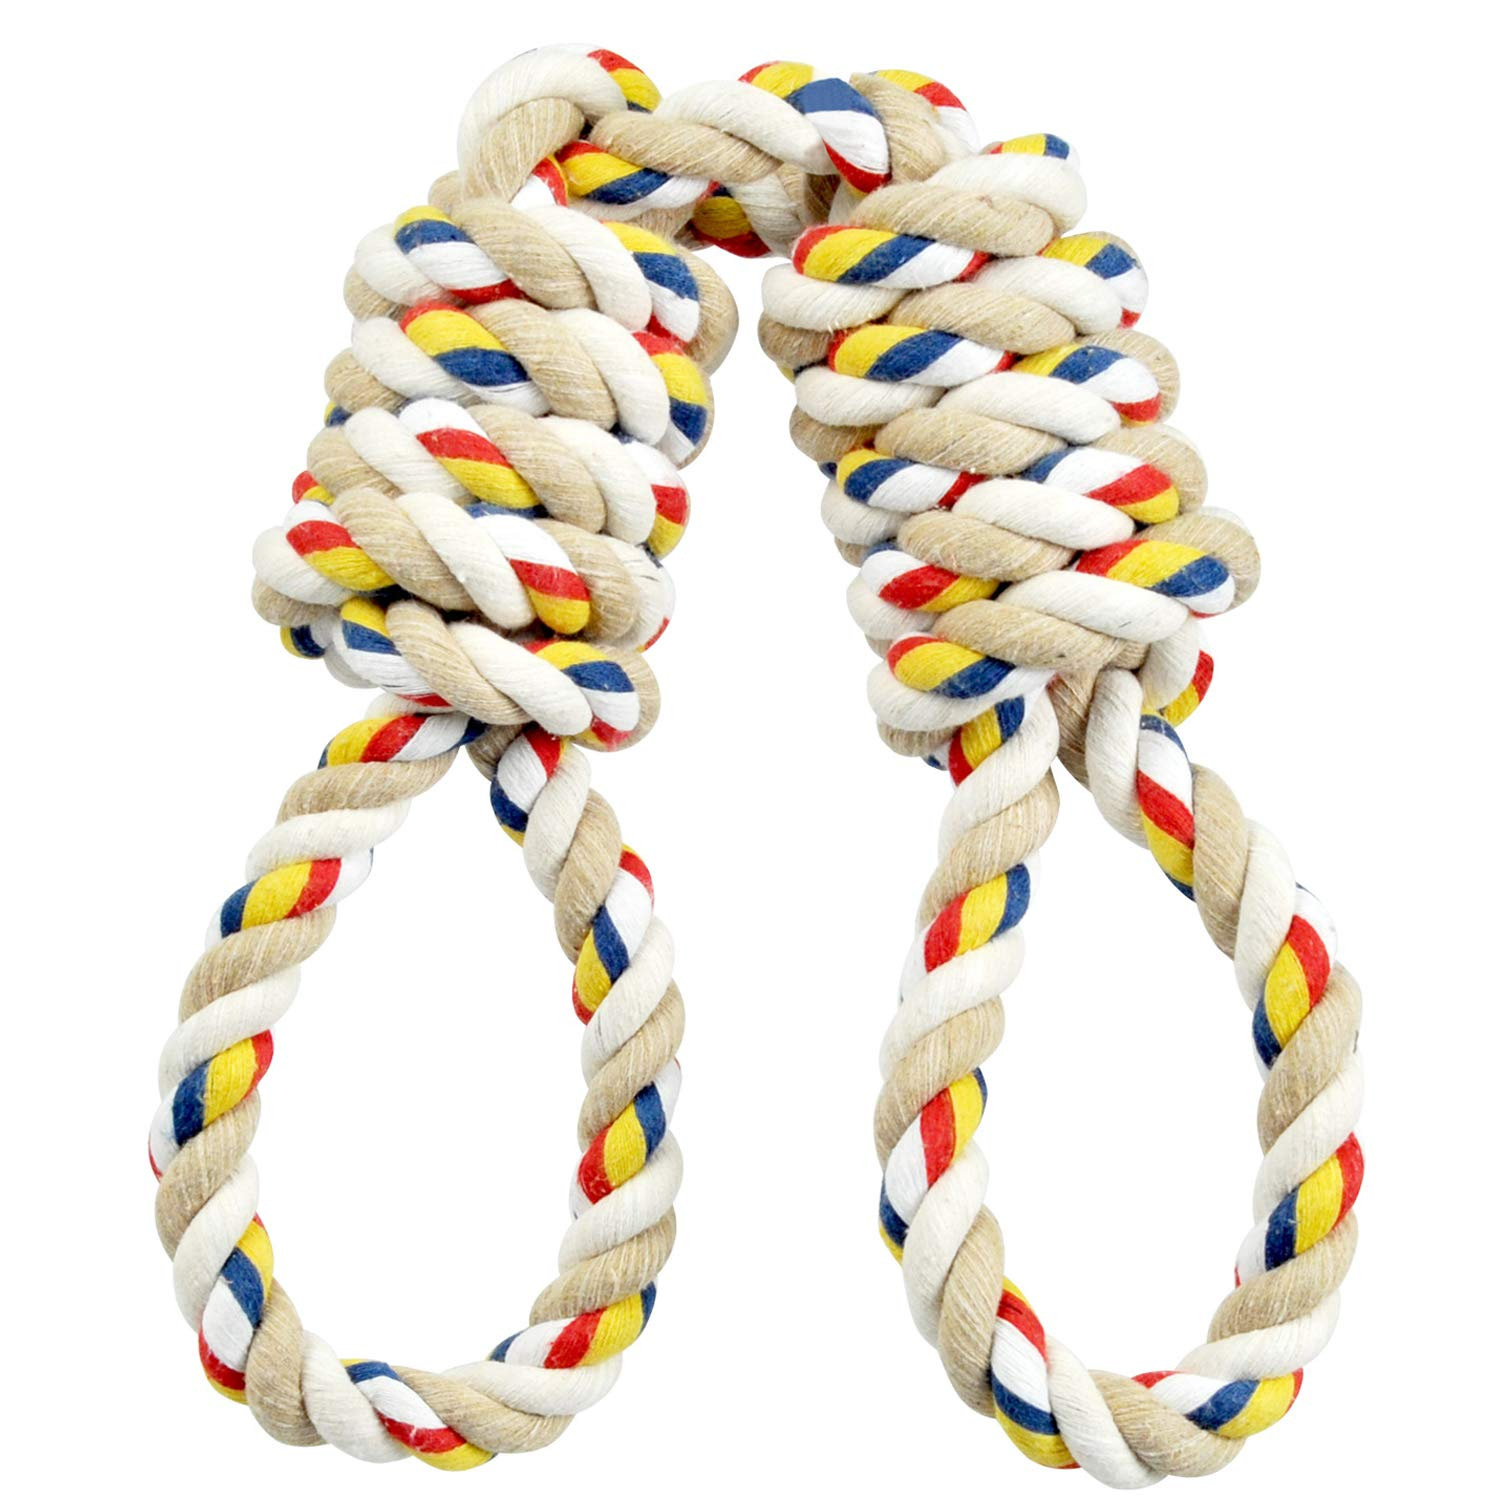 Hinrylife XL Dog Rope Toy for Aggerssive Chewers - 100% Cotton Tough Ropes Toy for Large and Medium Dogs - Tough Tug of War Rope toyl for Chewing and Teething by Hinry Life